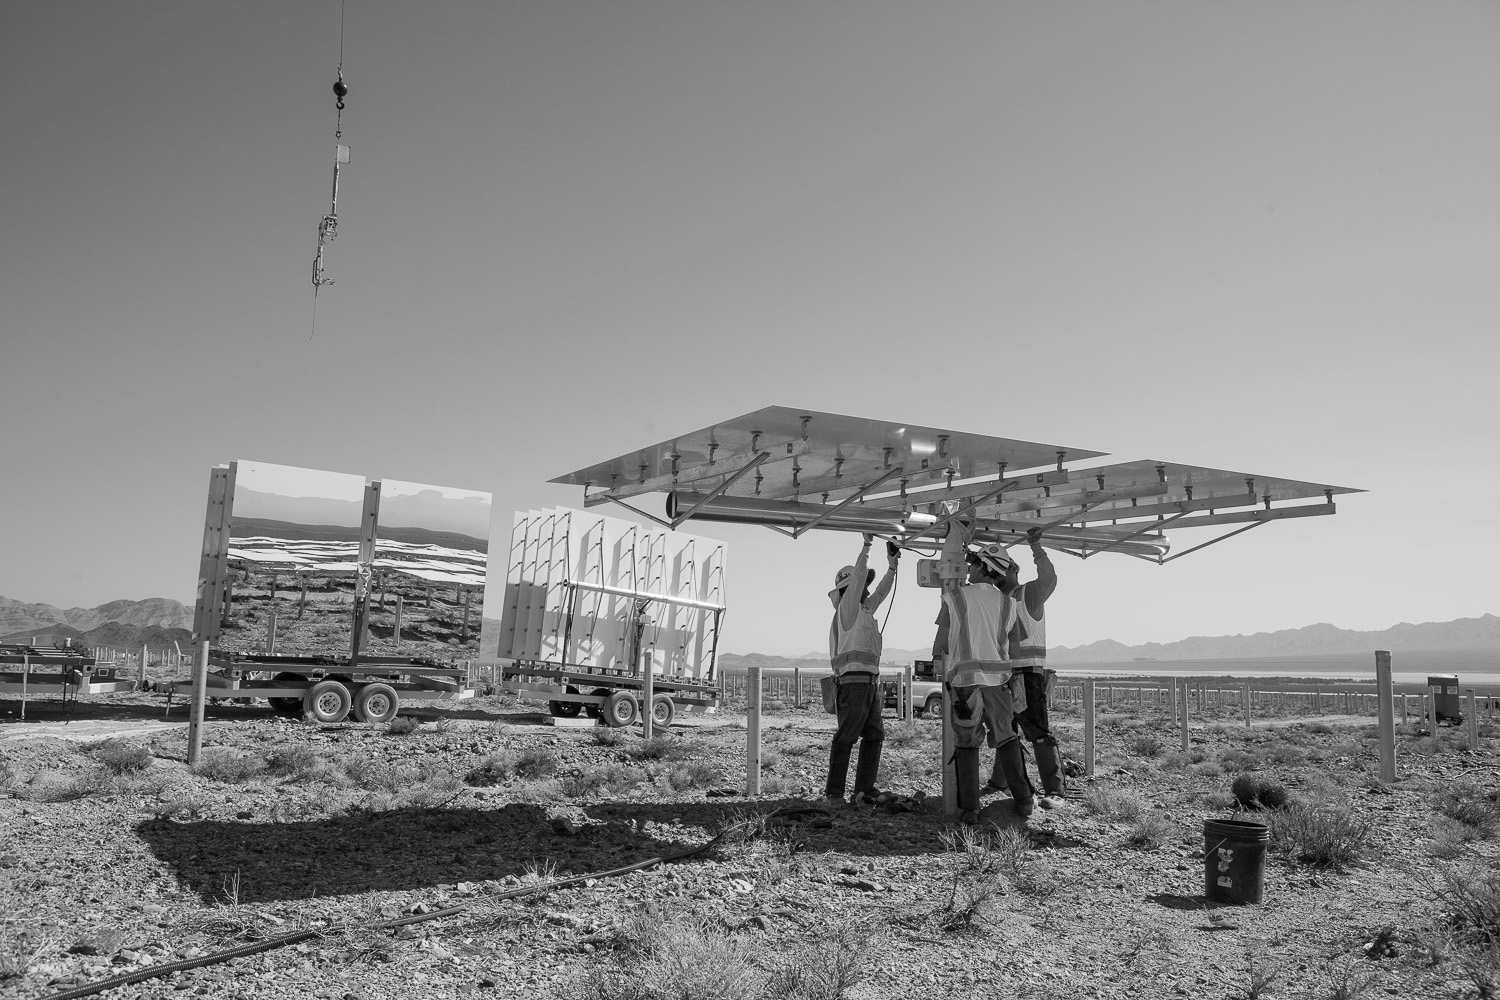 <i>Heliostat installation, June 2012</i>                                   Workers installing a heliostat at Solar Field One.